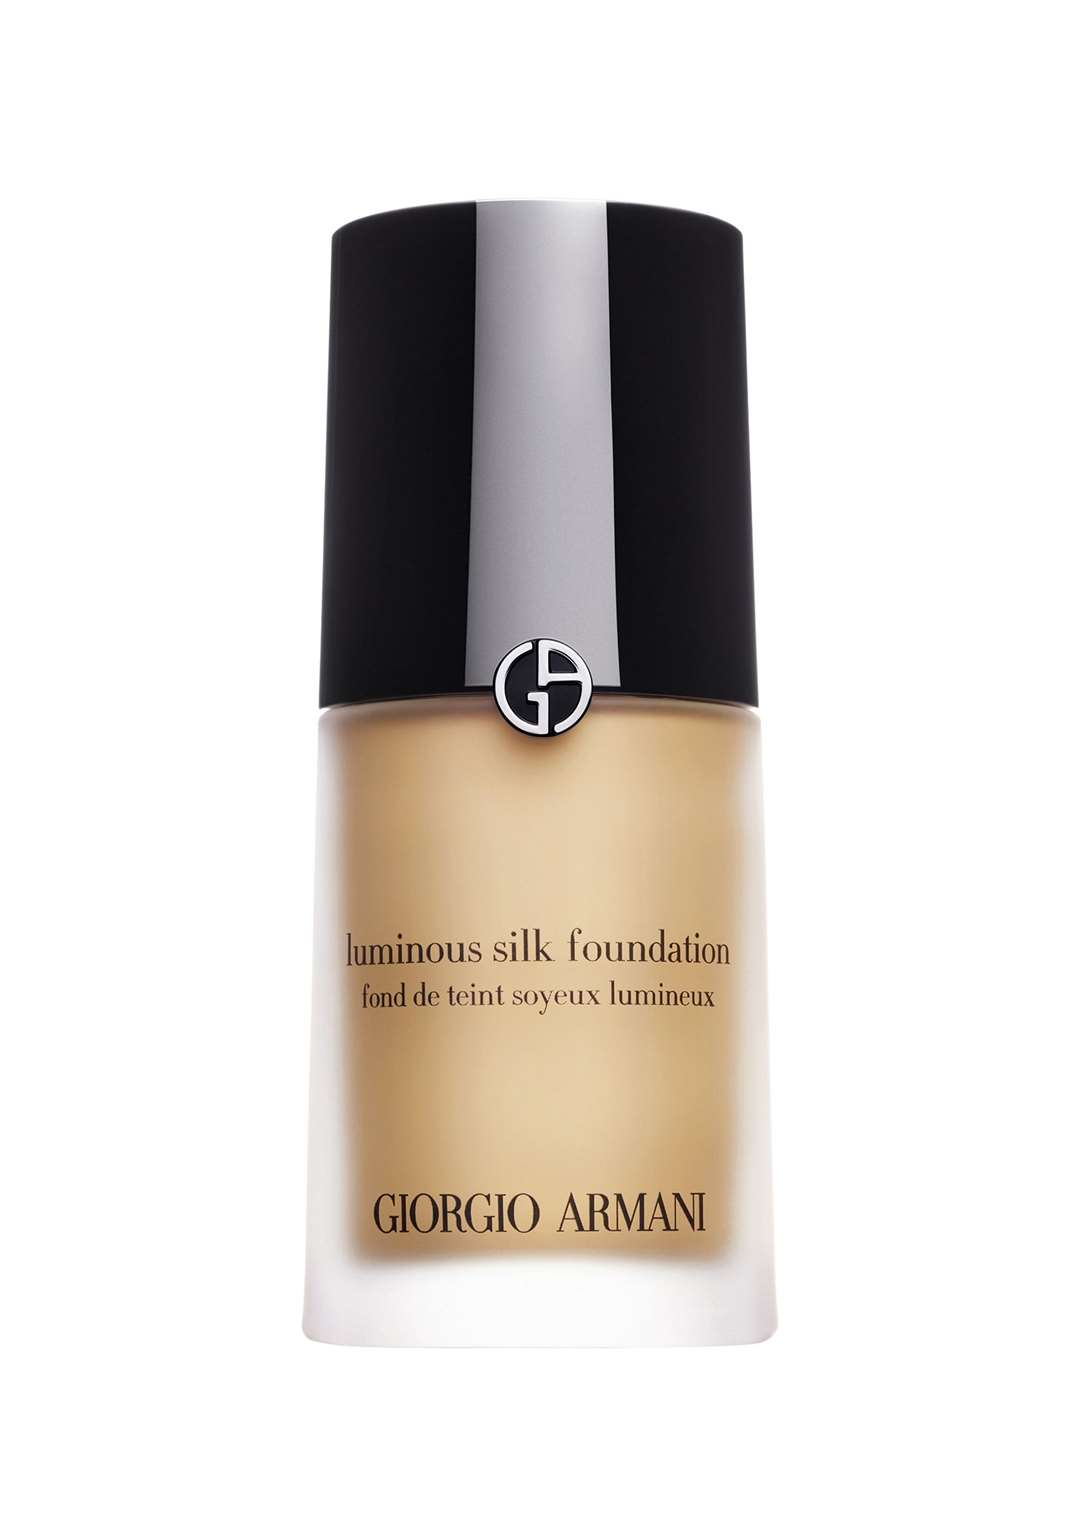 Georgio Armani Luminous Silk Foundation, £42, John Lewis & Partners, Grand Arcade, and Debenhams, The Grafton, Cambridge (26884127)